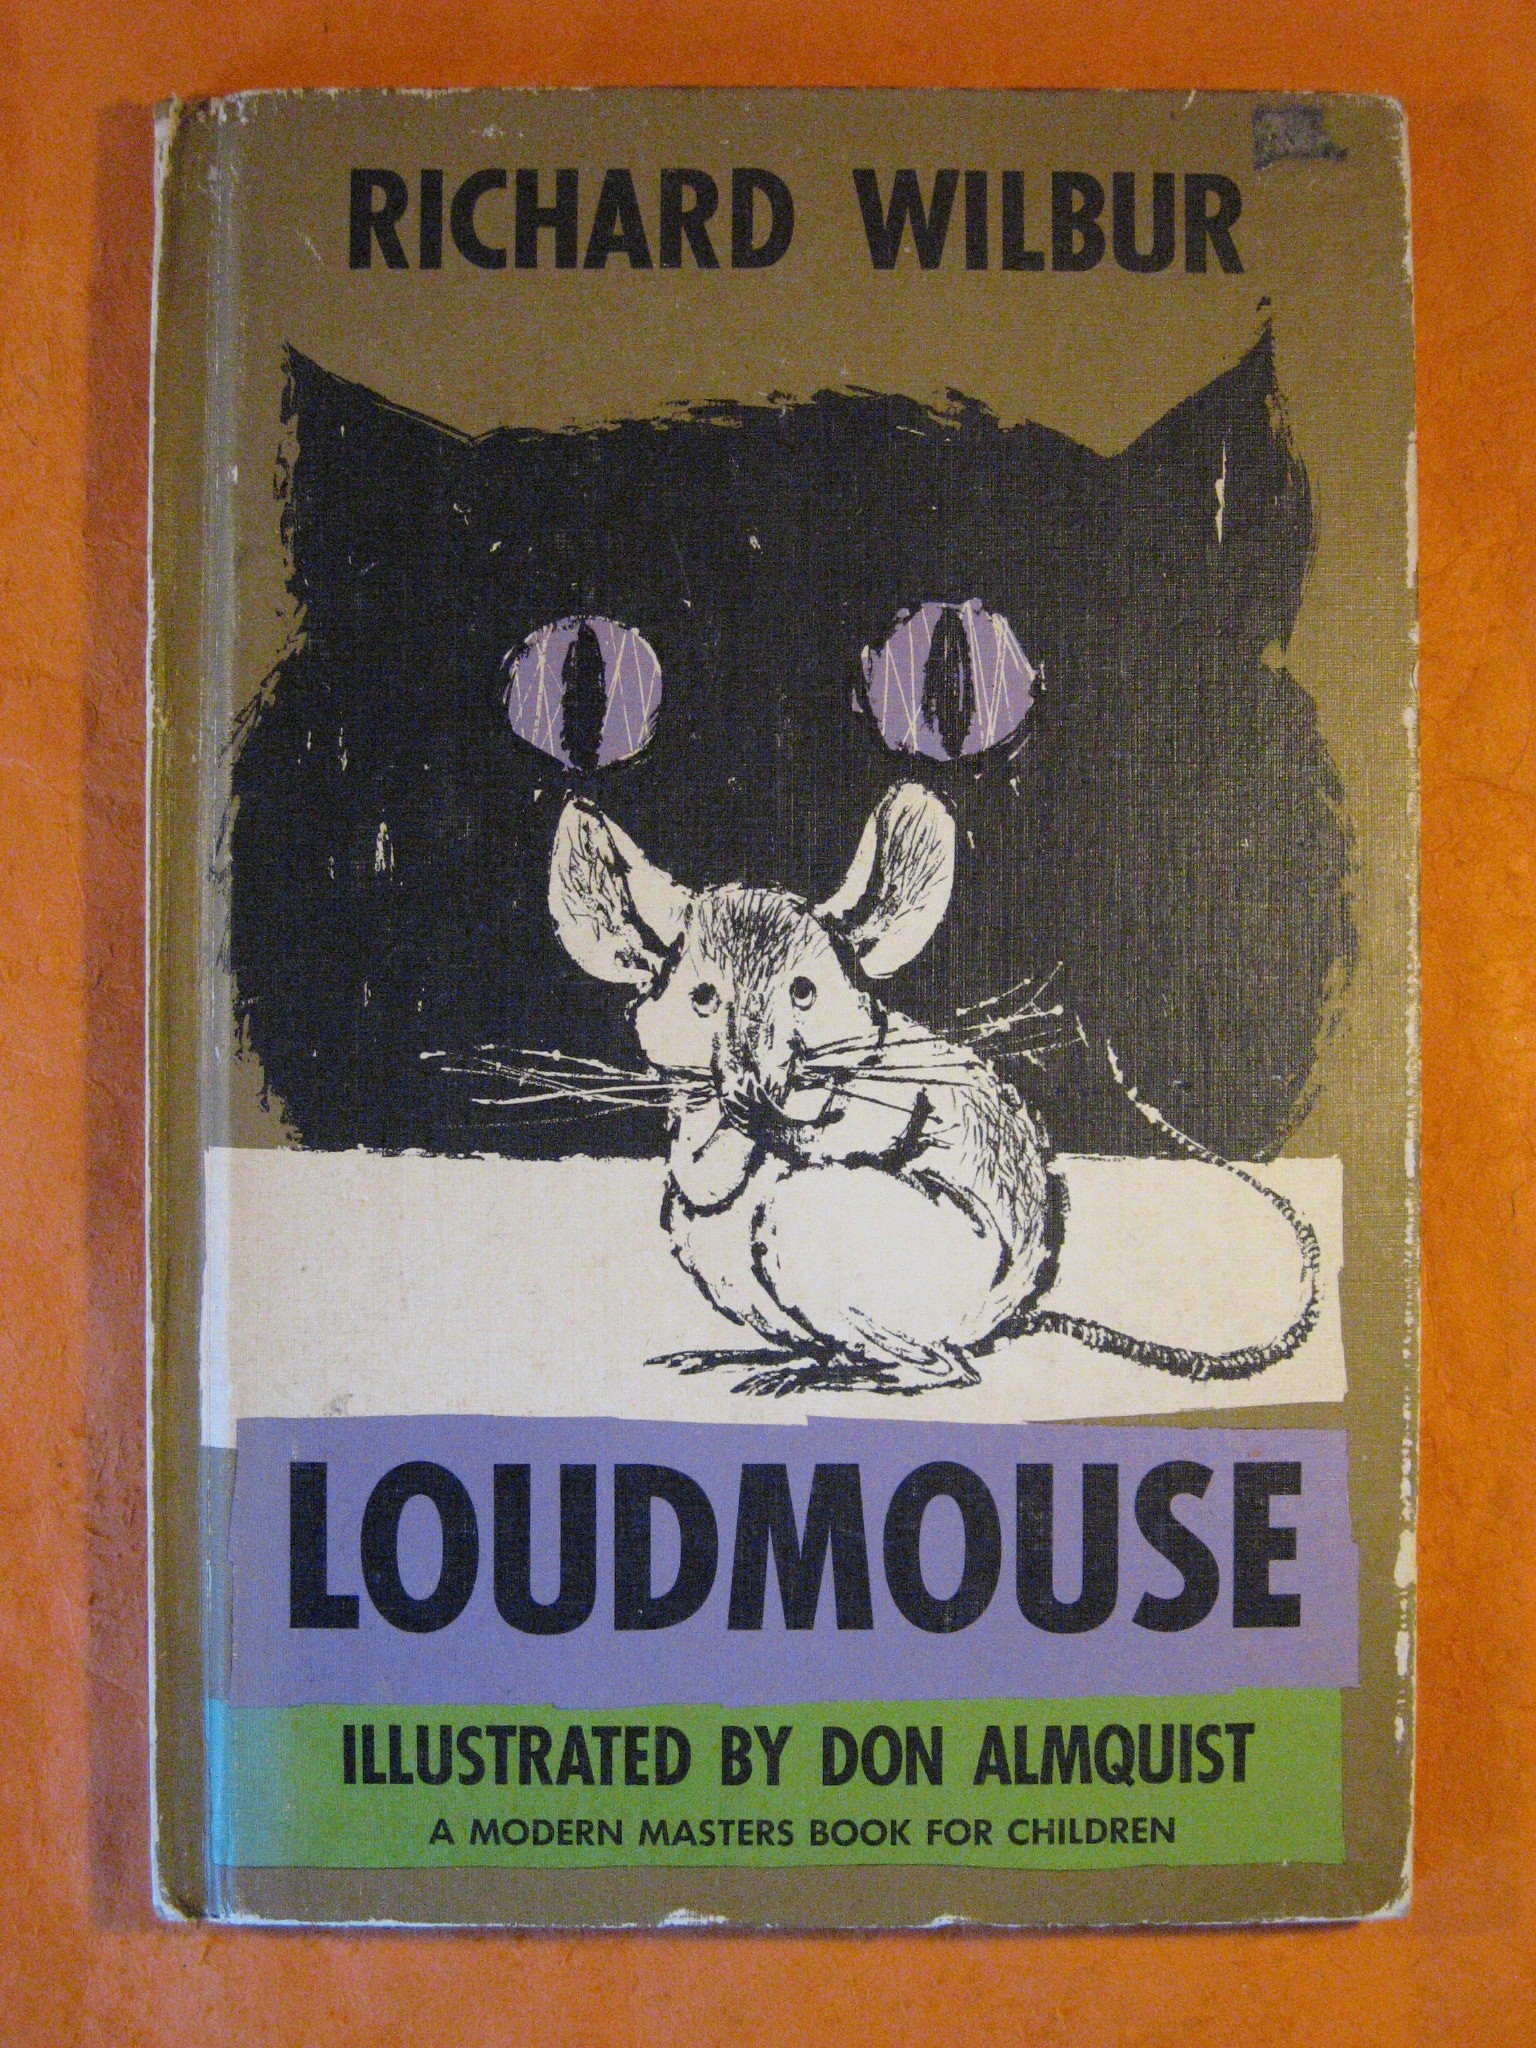 Loudmouse (A Modern Masters Book for Children), Wilbur, Richard